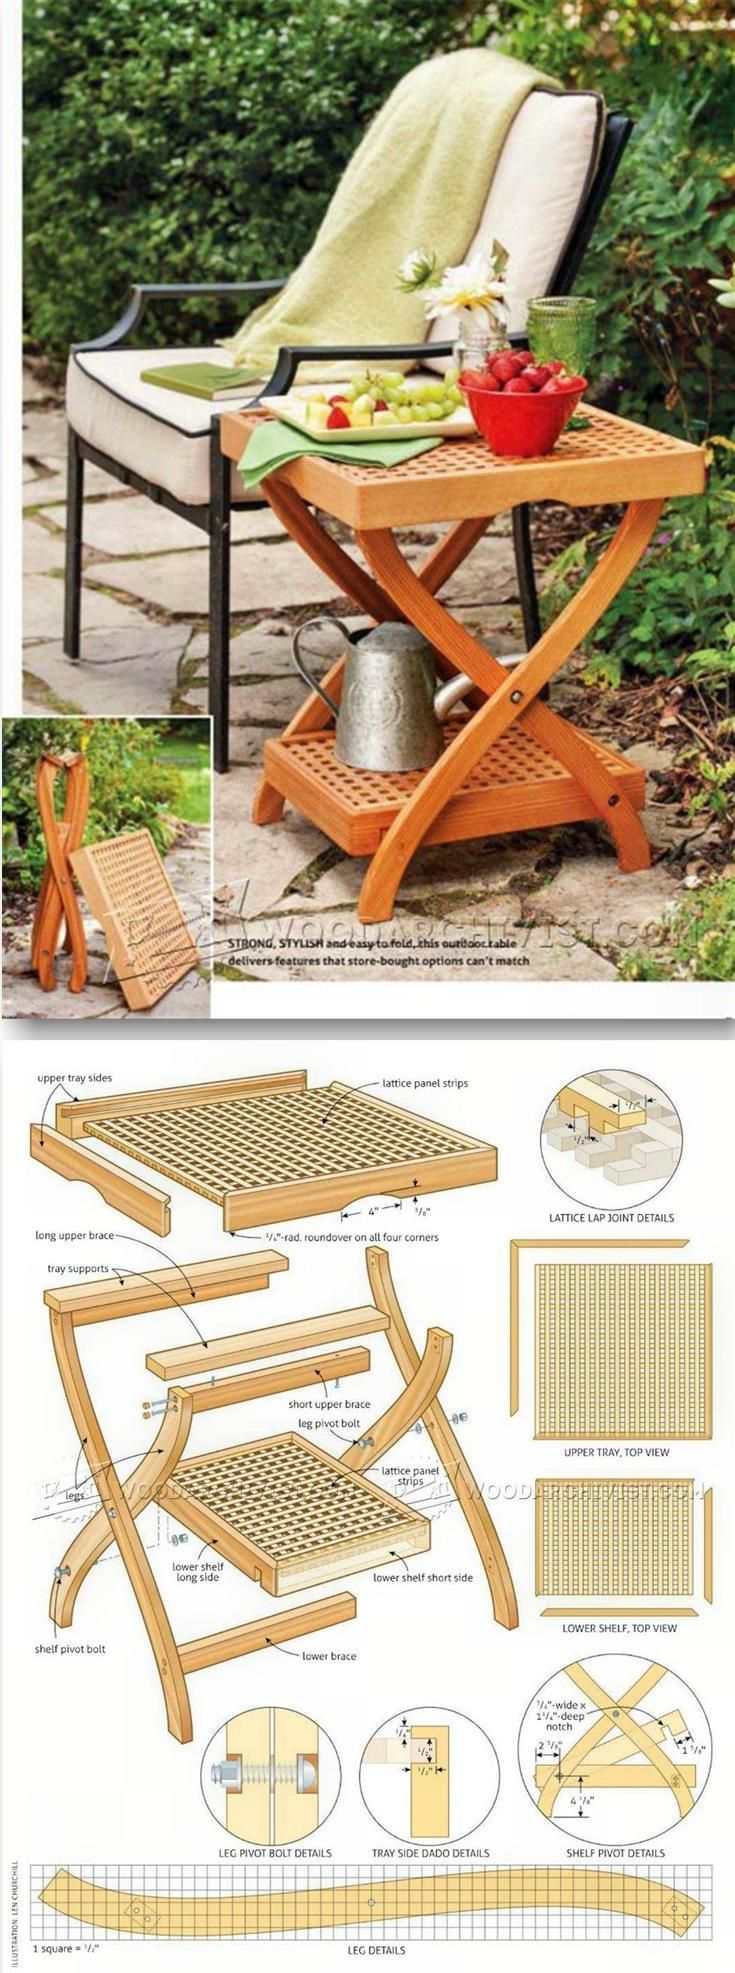 Garden chair top view - Butler Tray Table Plans Outdoor Furniture Plans And Projects Woodarchivist Com